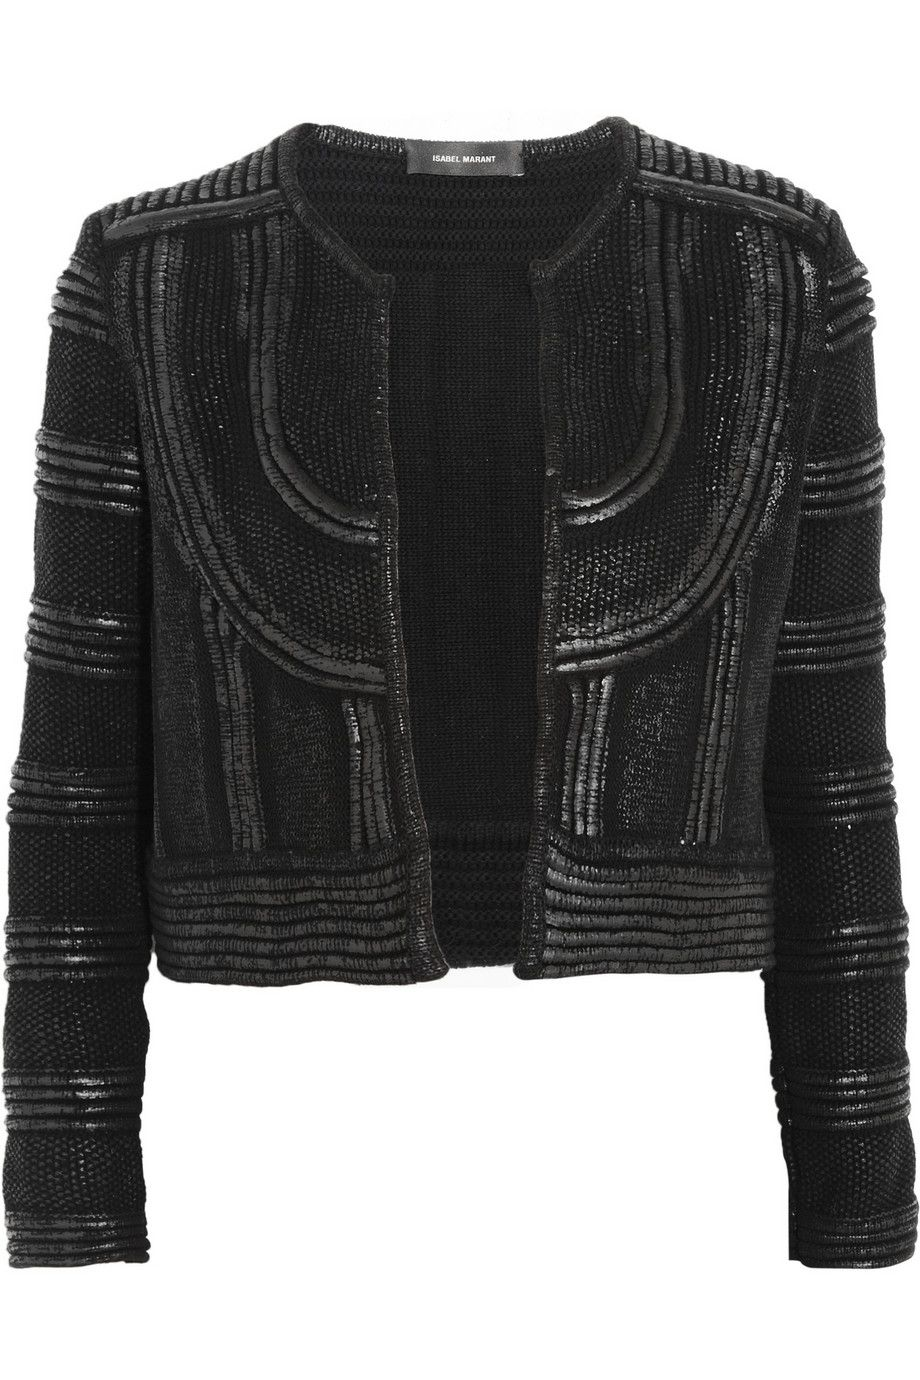 http://www.theoutnet.com/en-GB/product/Isabel-Marant/Kazia-lacquered-cotton-knitted-acket/630399